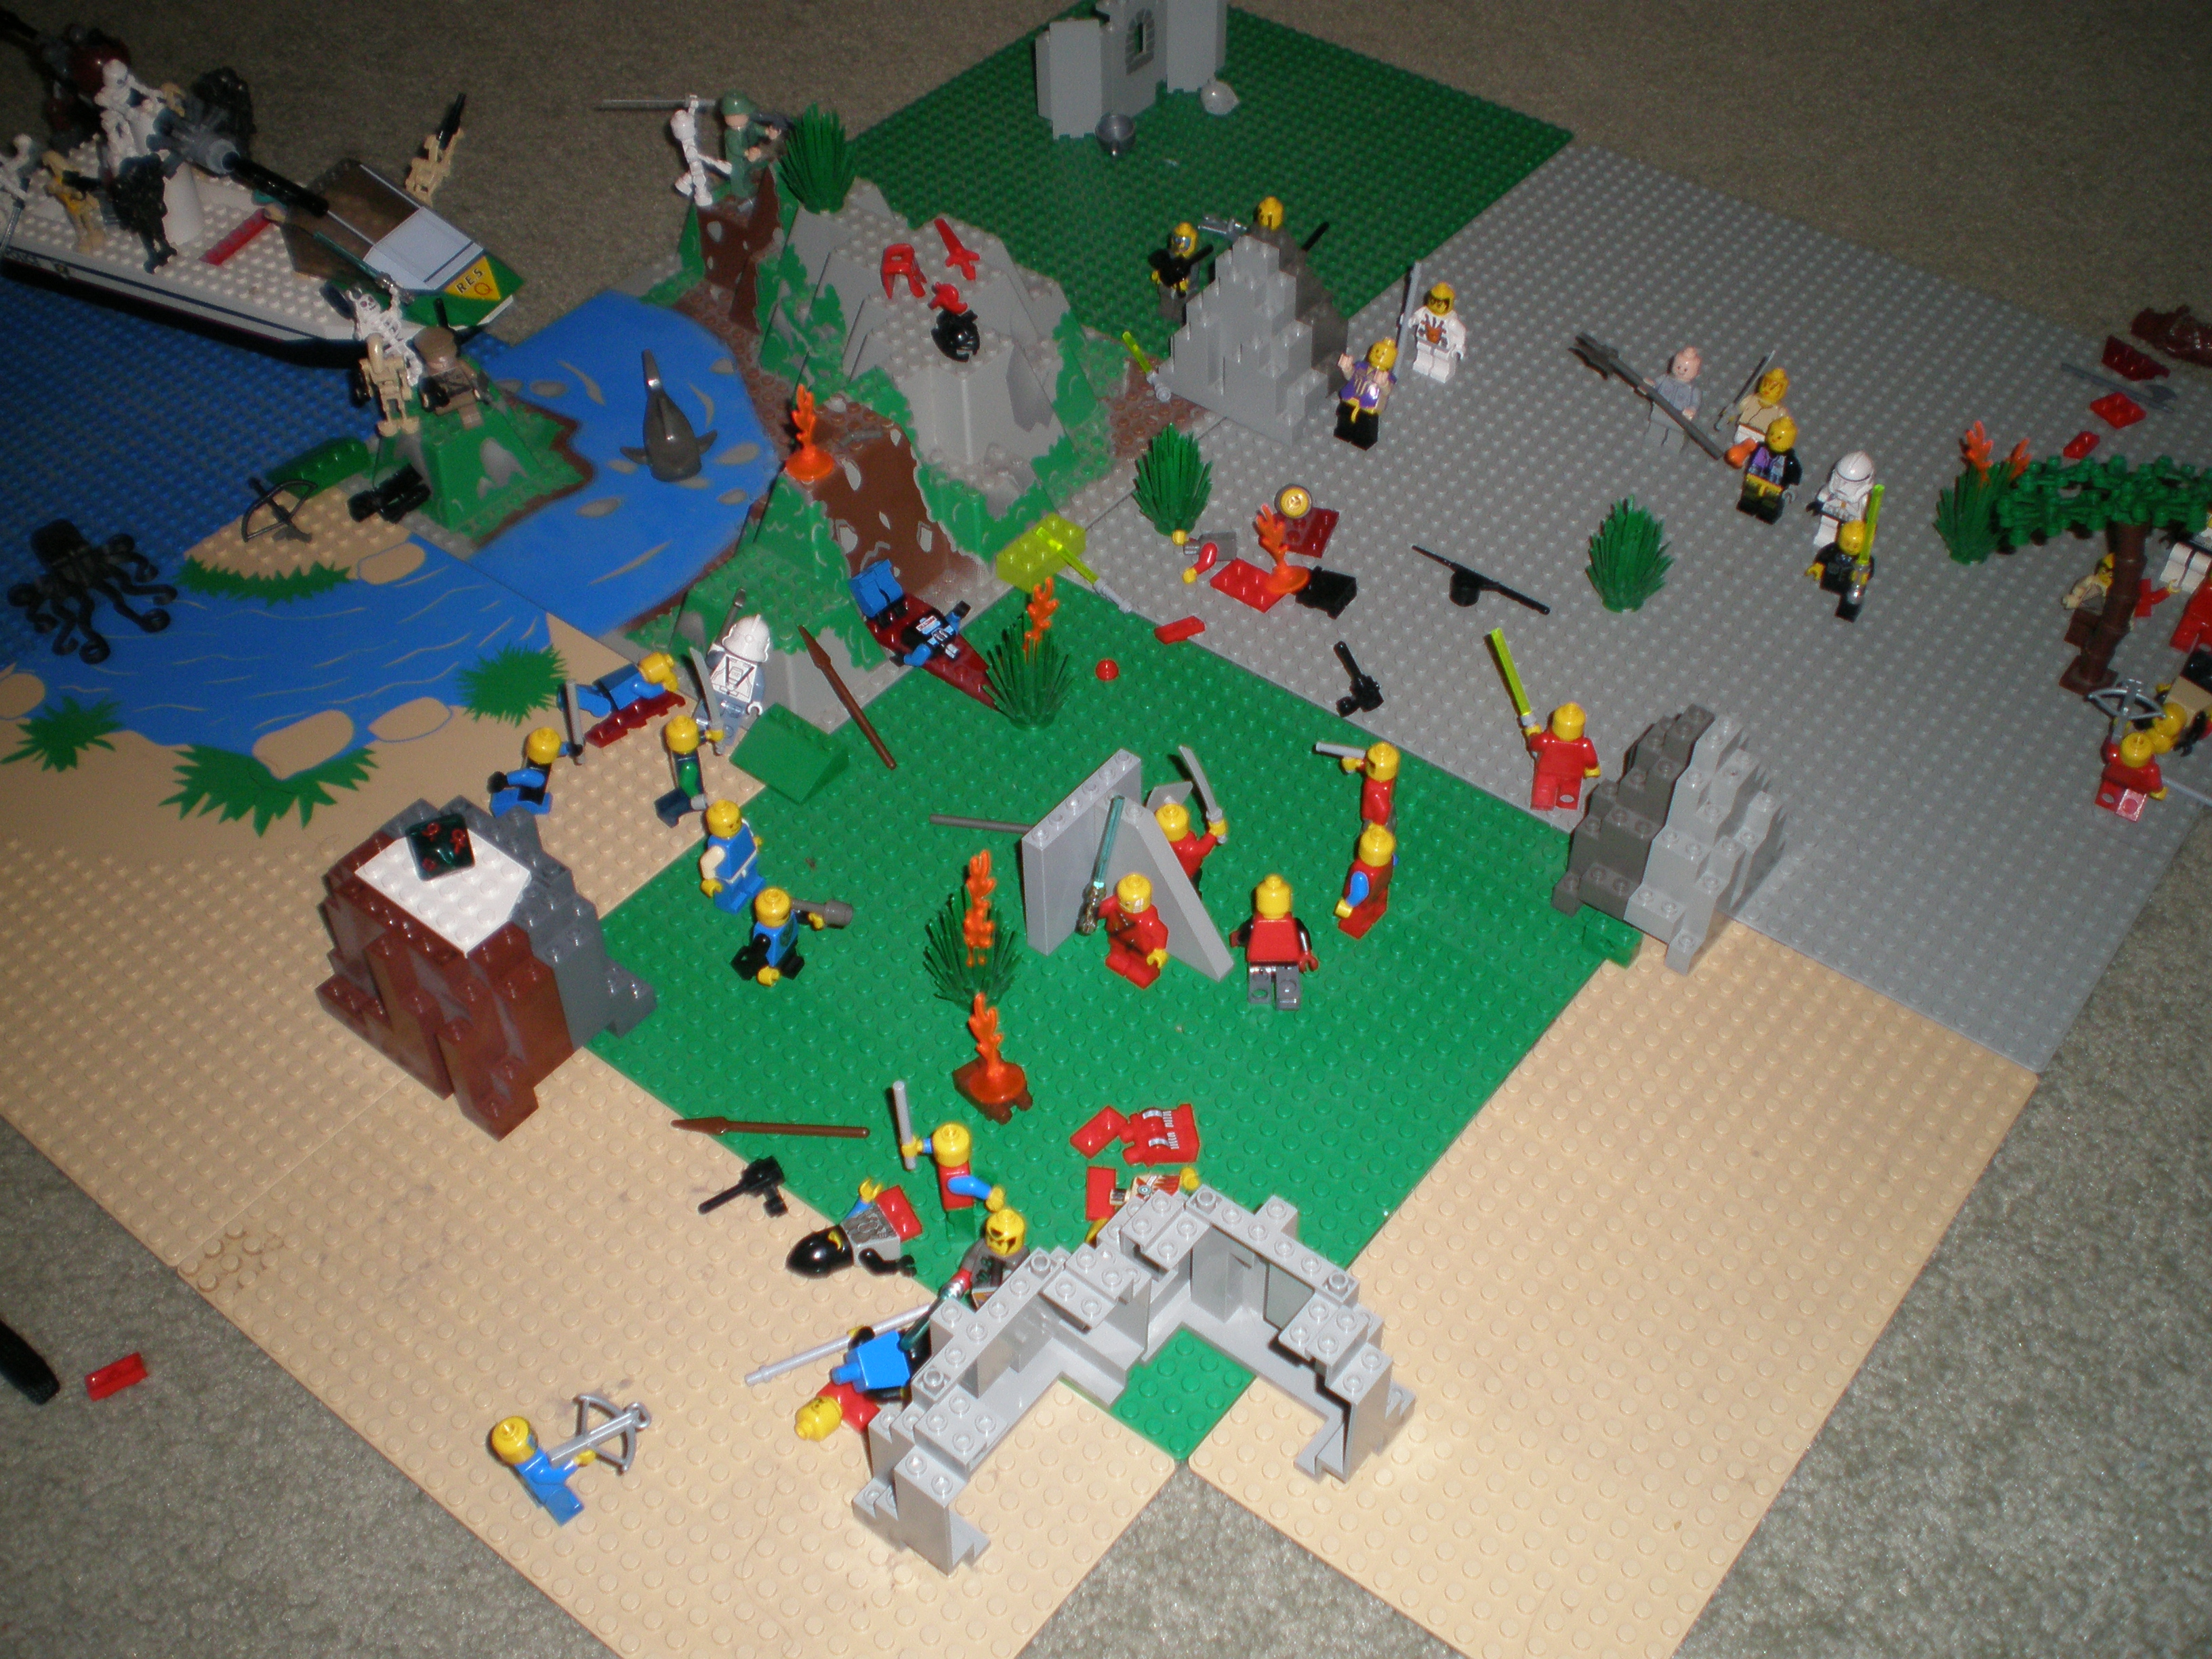 armagendon_lego_battle_001.jpg